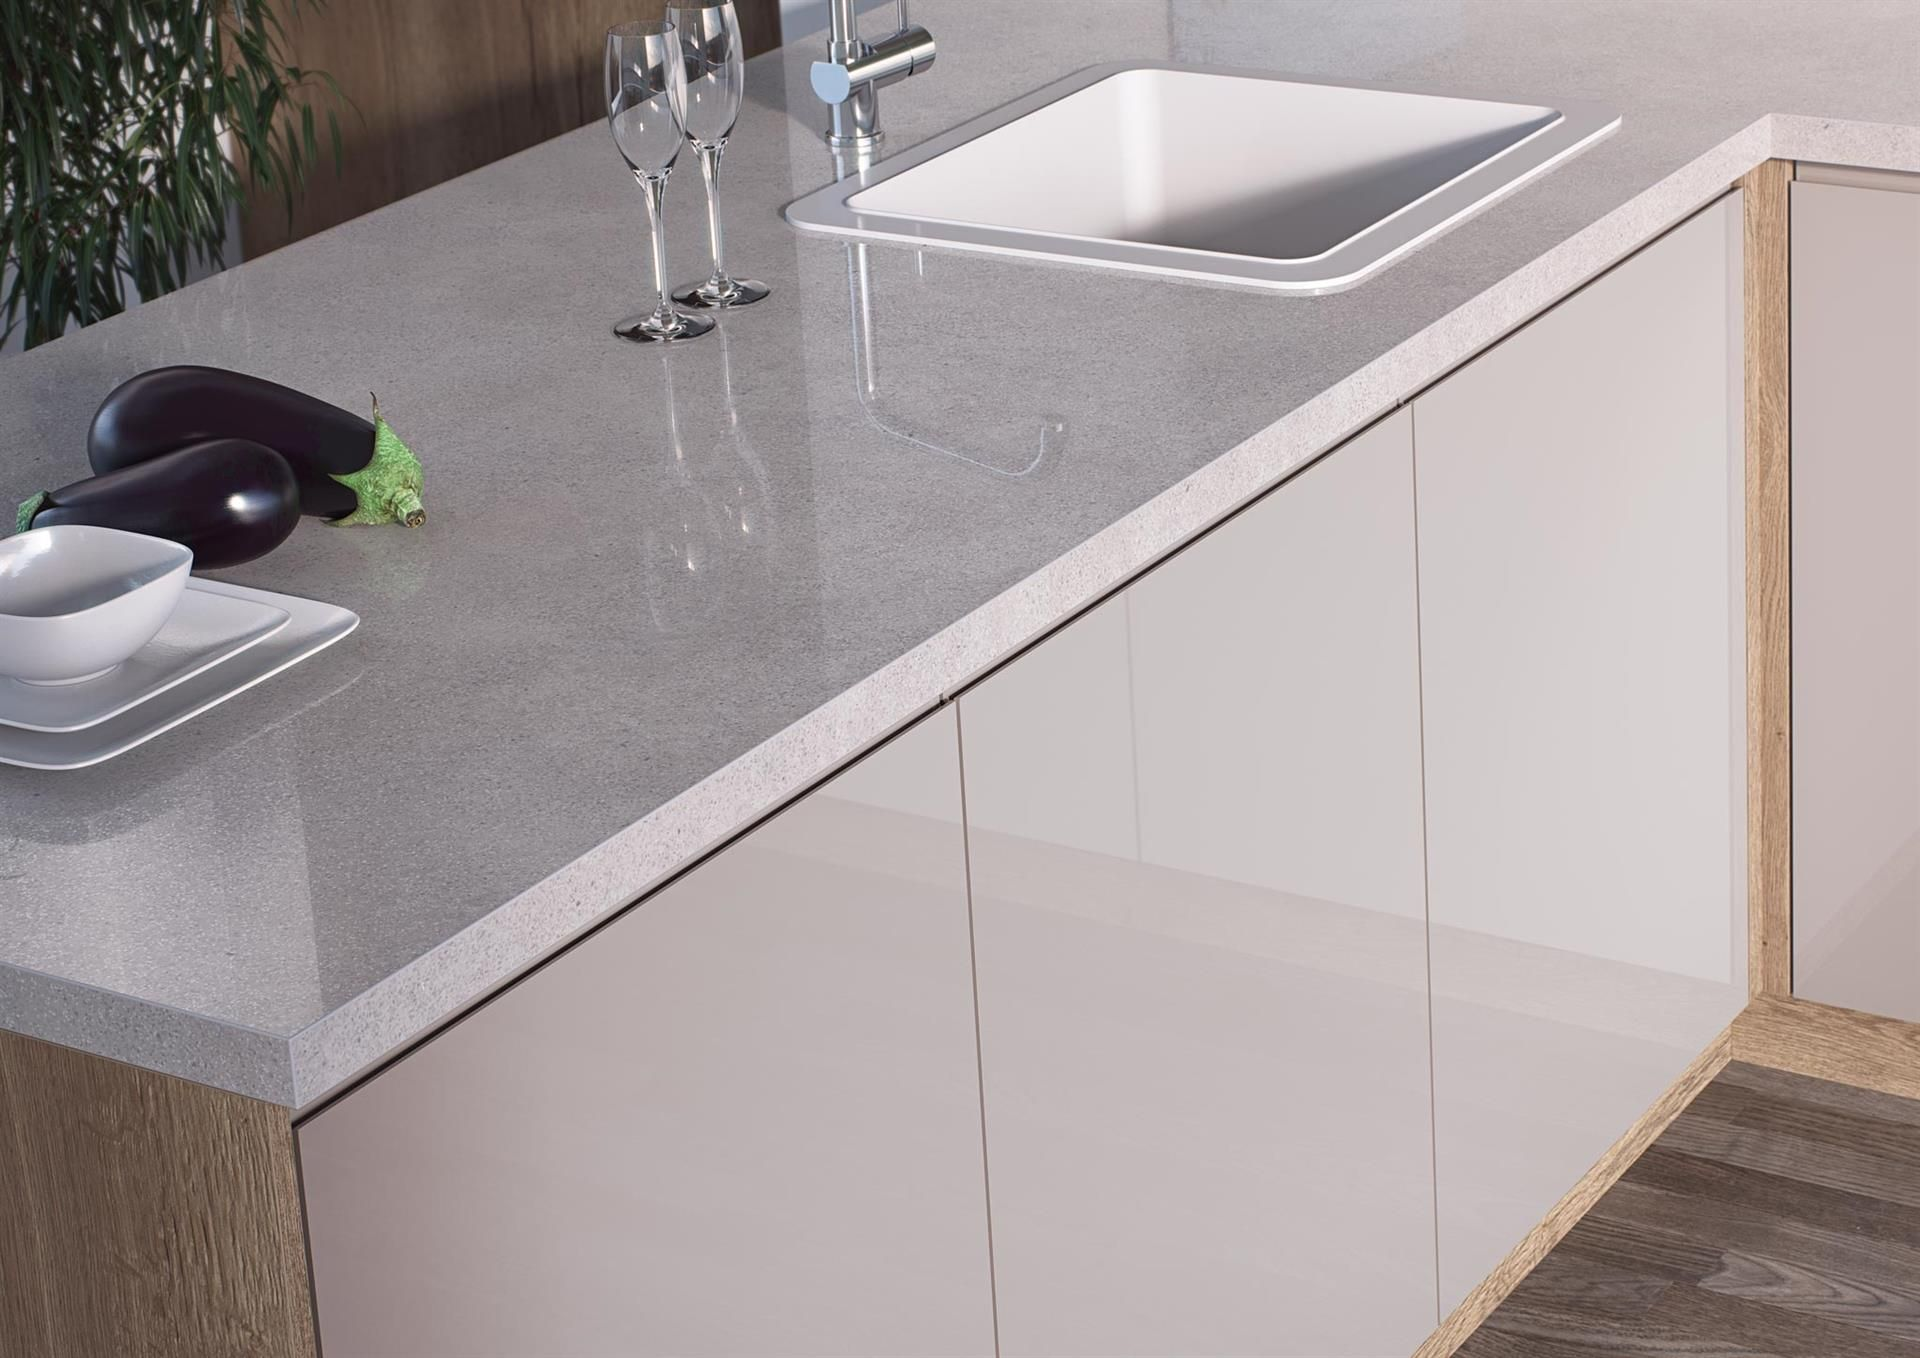 Cosmic White With its highly realistic quartz effect and